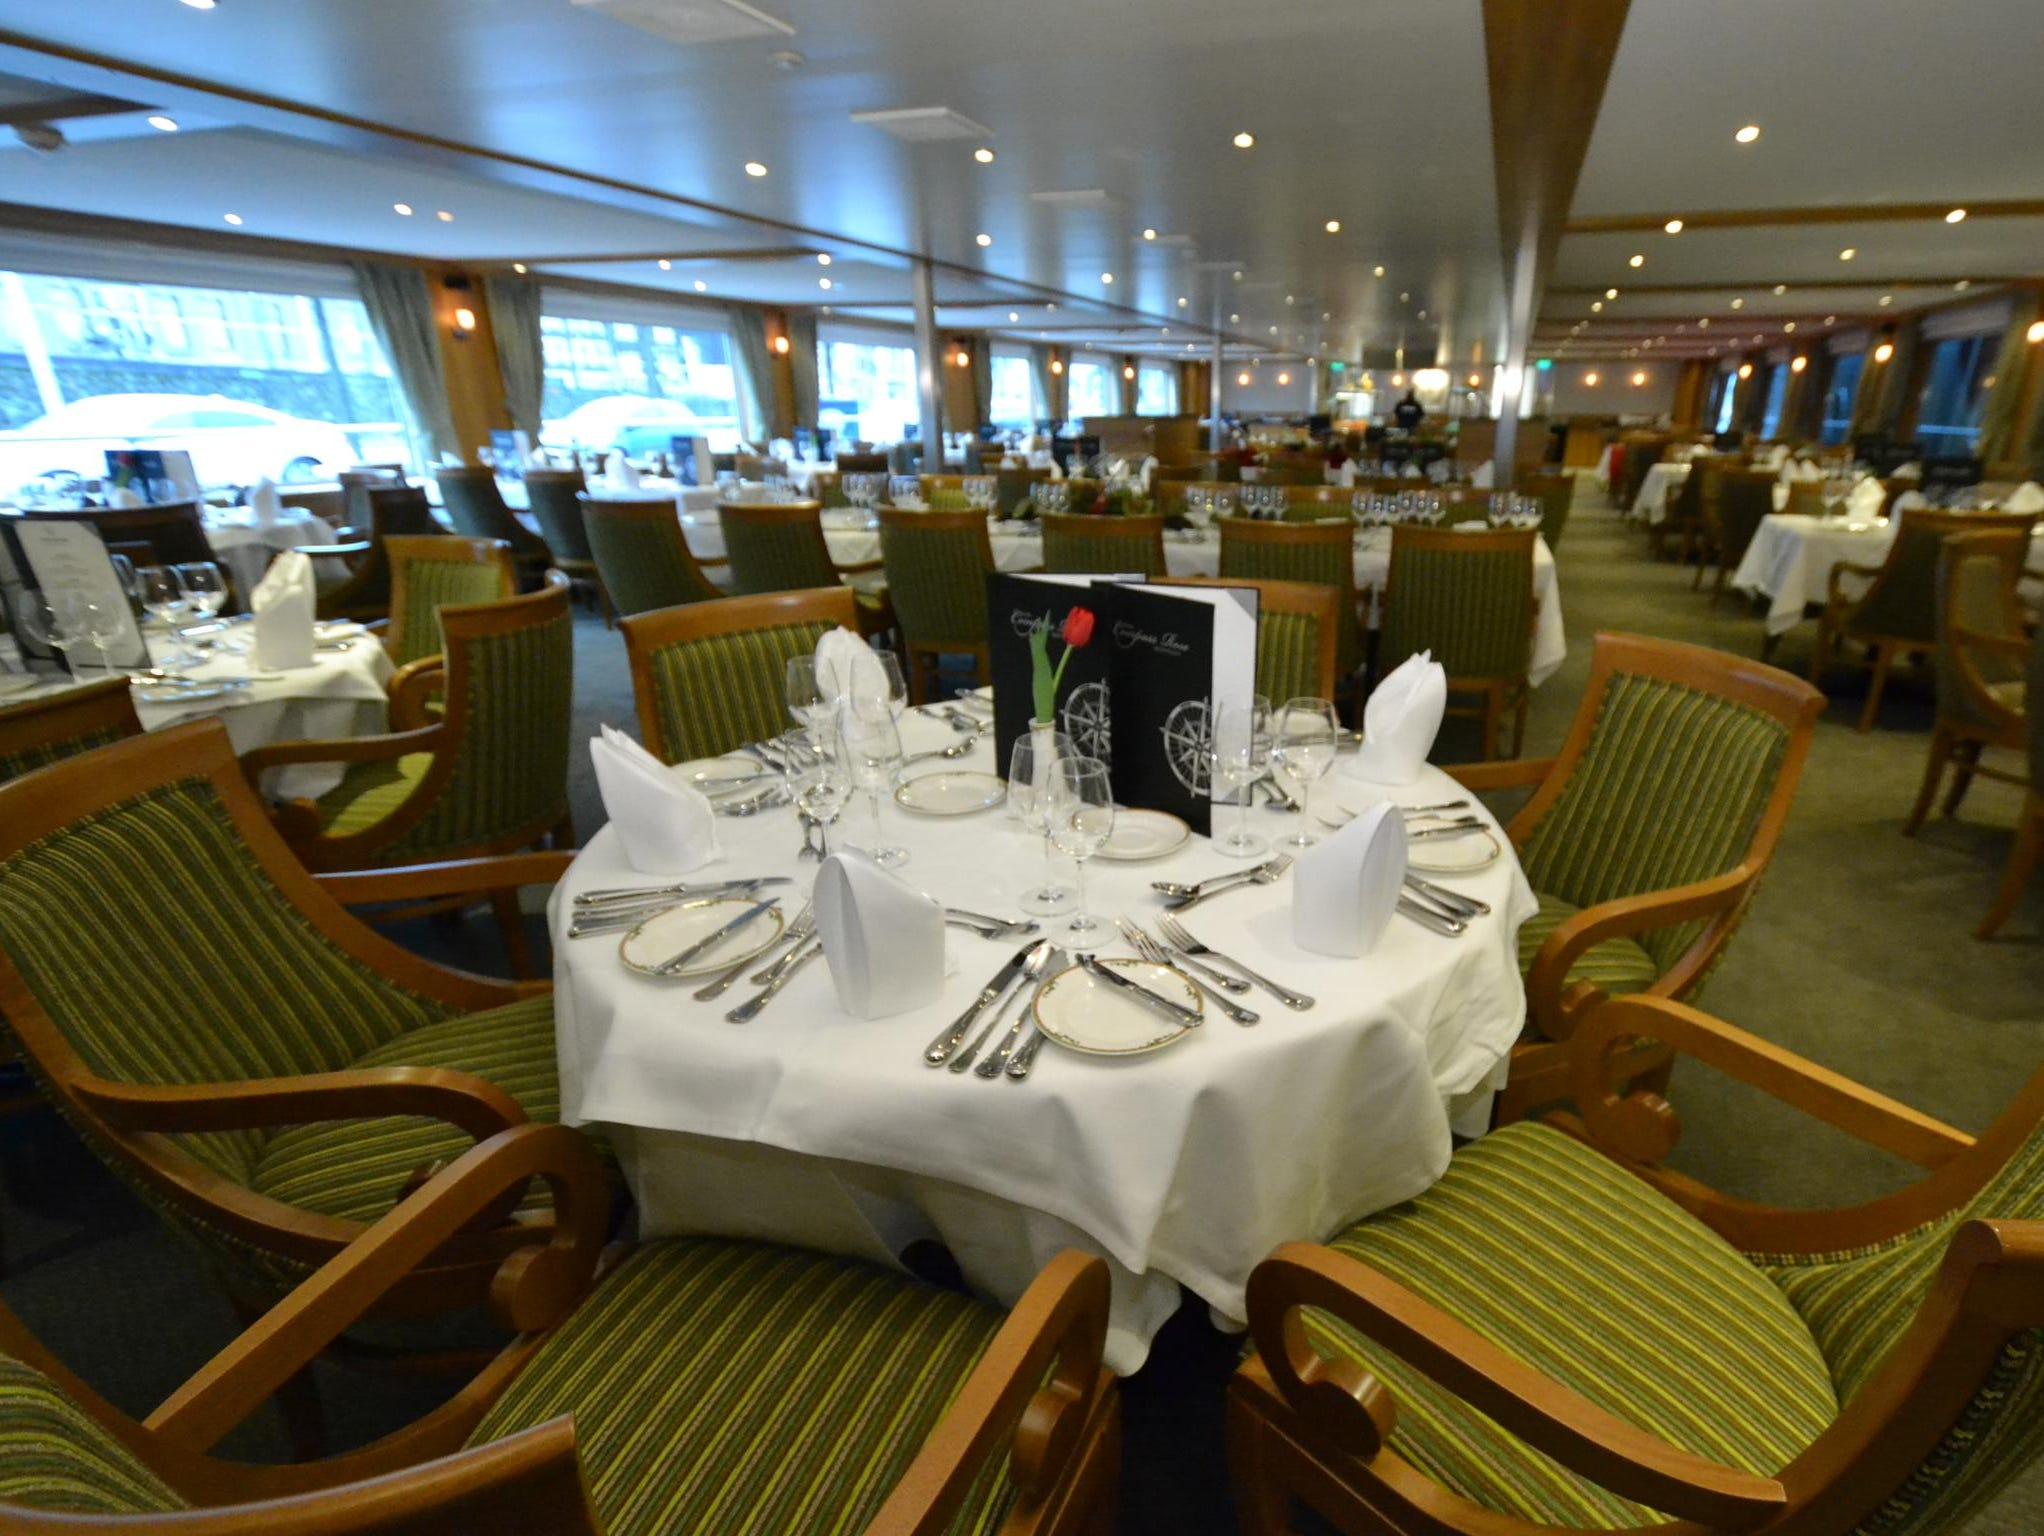 The River Discovery II's main dining room is located on the vessel's mid-level passenger deck, called the Explorer Deck.